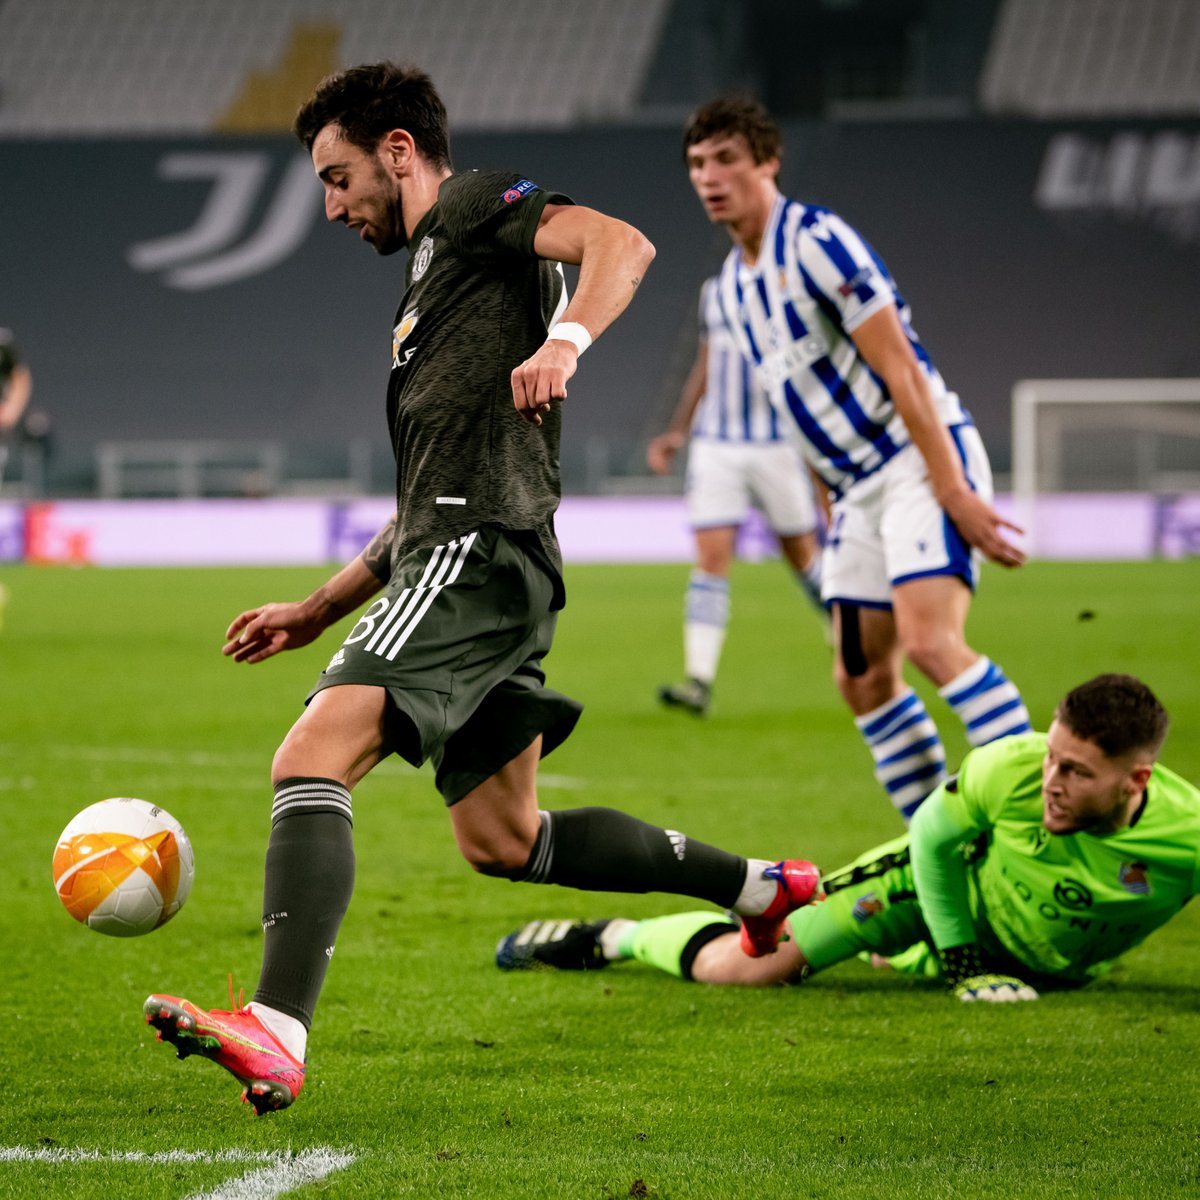 Bruno Fernandes put on a midfield masterclass against Real Sociedad 👏  (via @EuropaLeague)